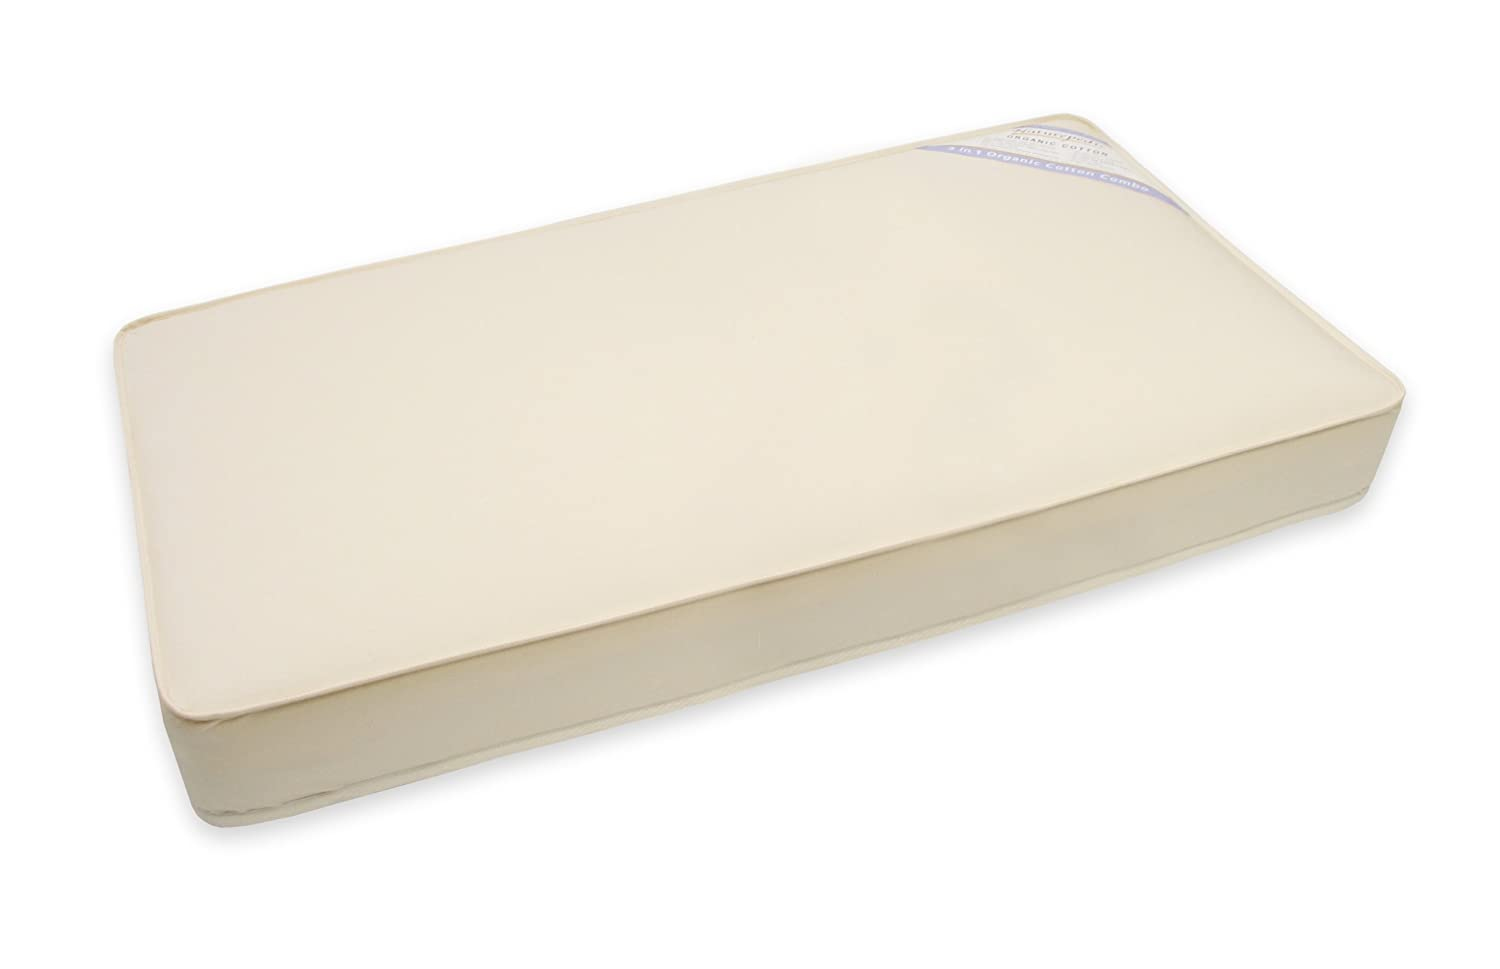 Amazon.com: Naturepedic Organic Full Mattress Ultra: Baby